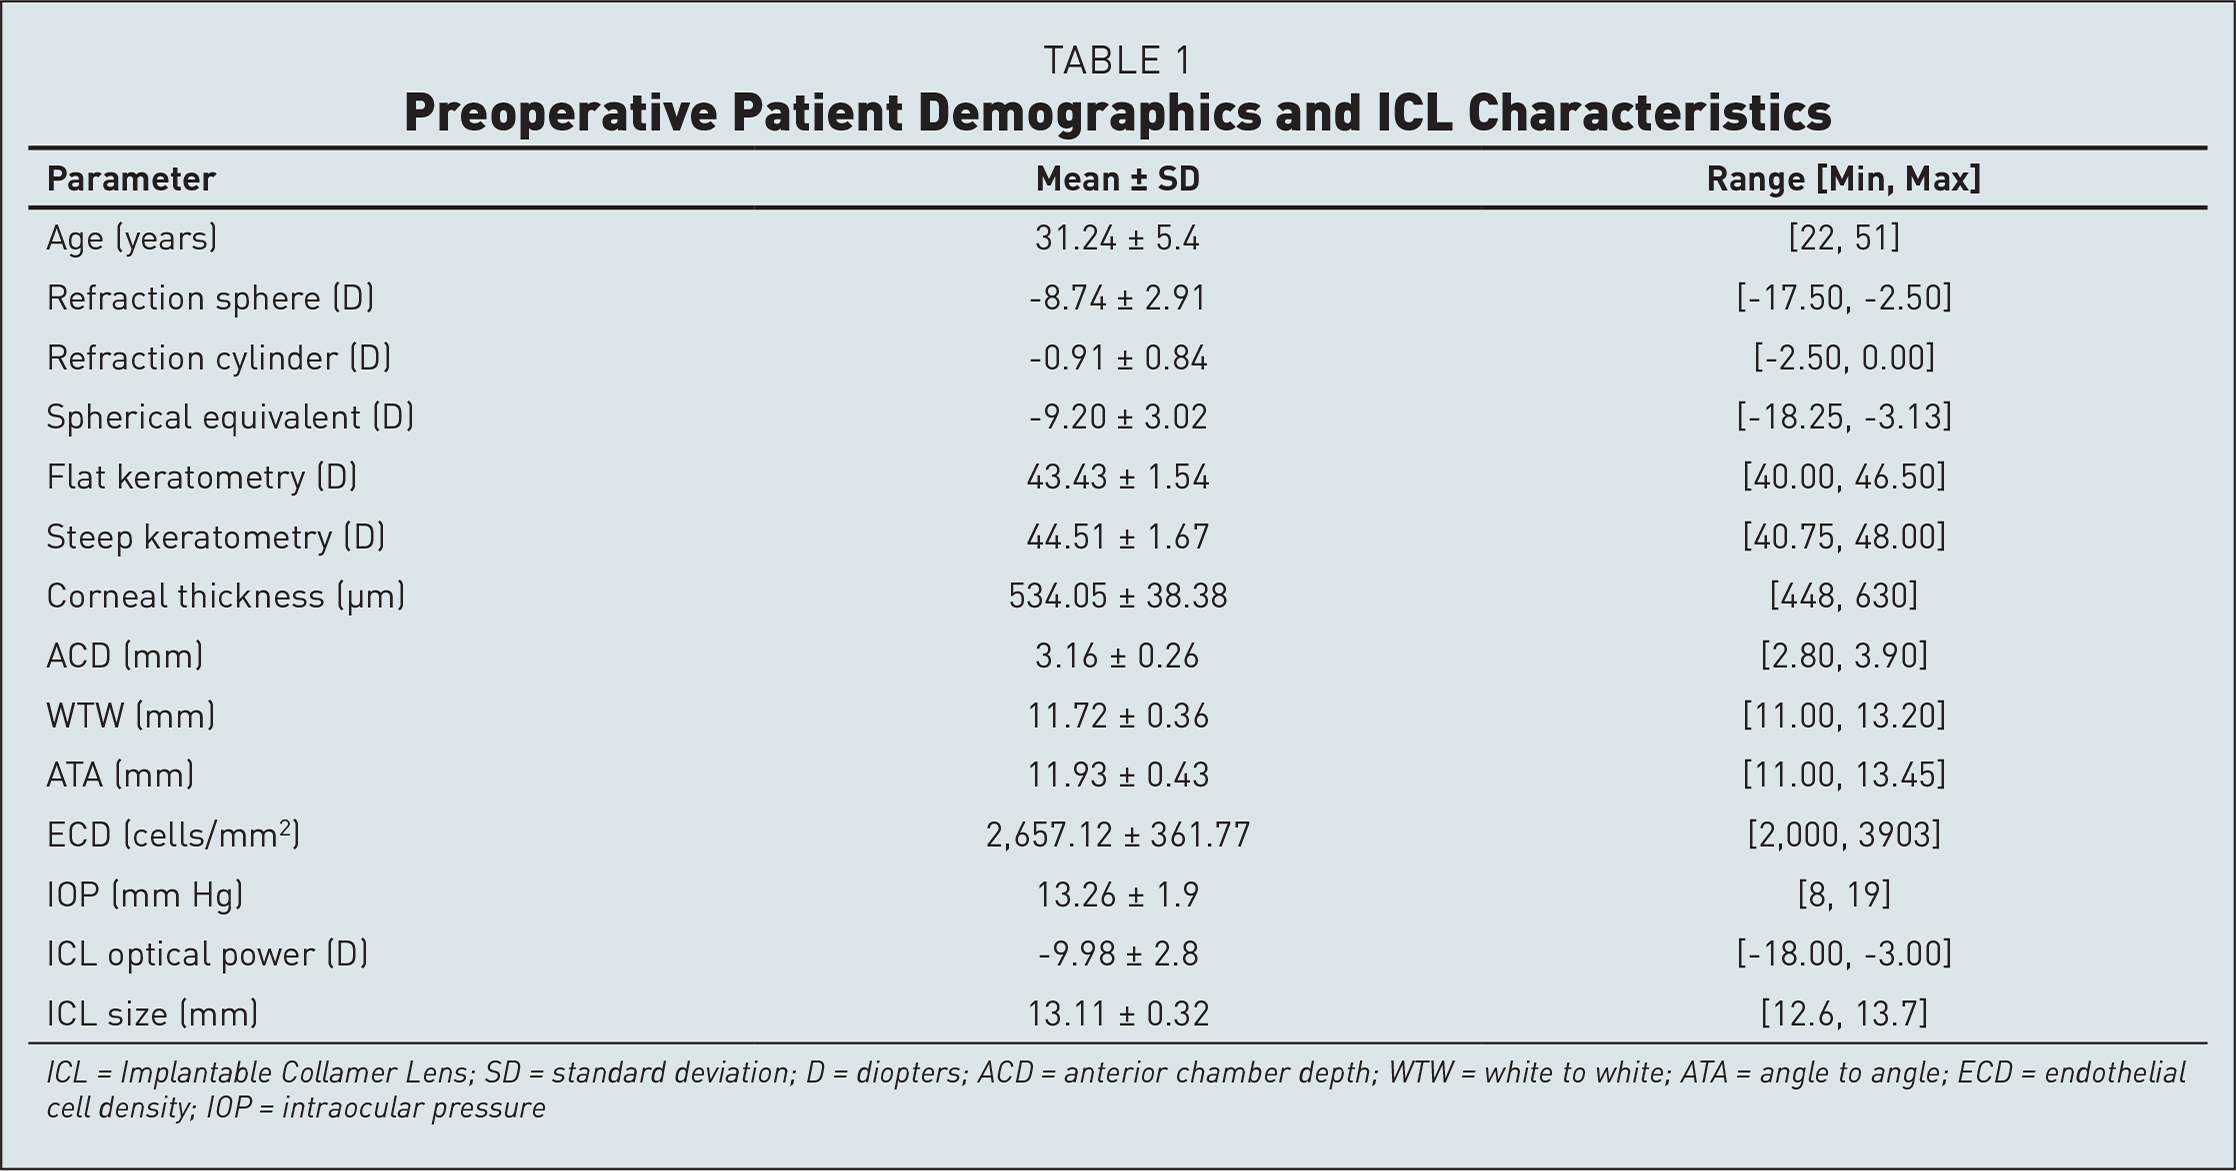 Preoperative Patient Demographics and ICL Characteristics